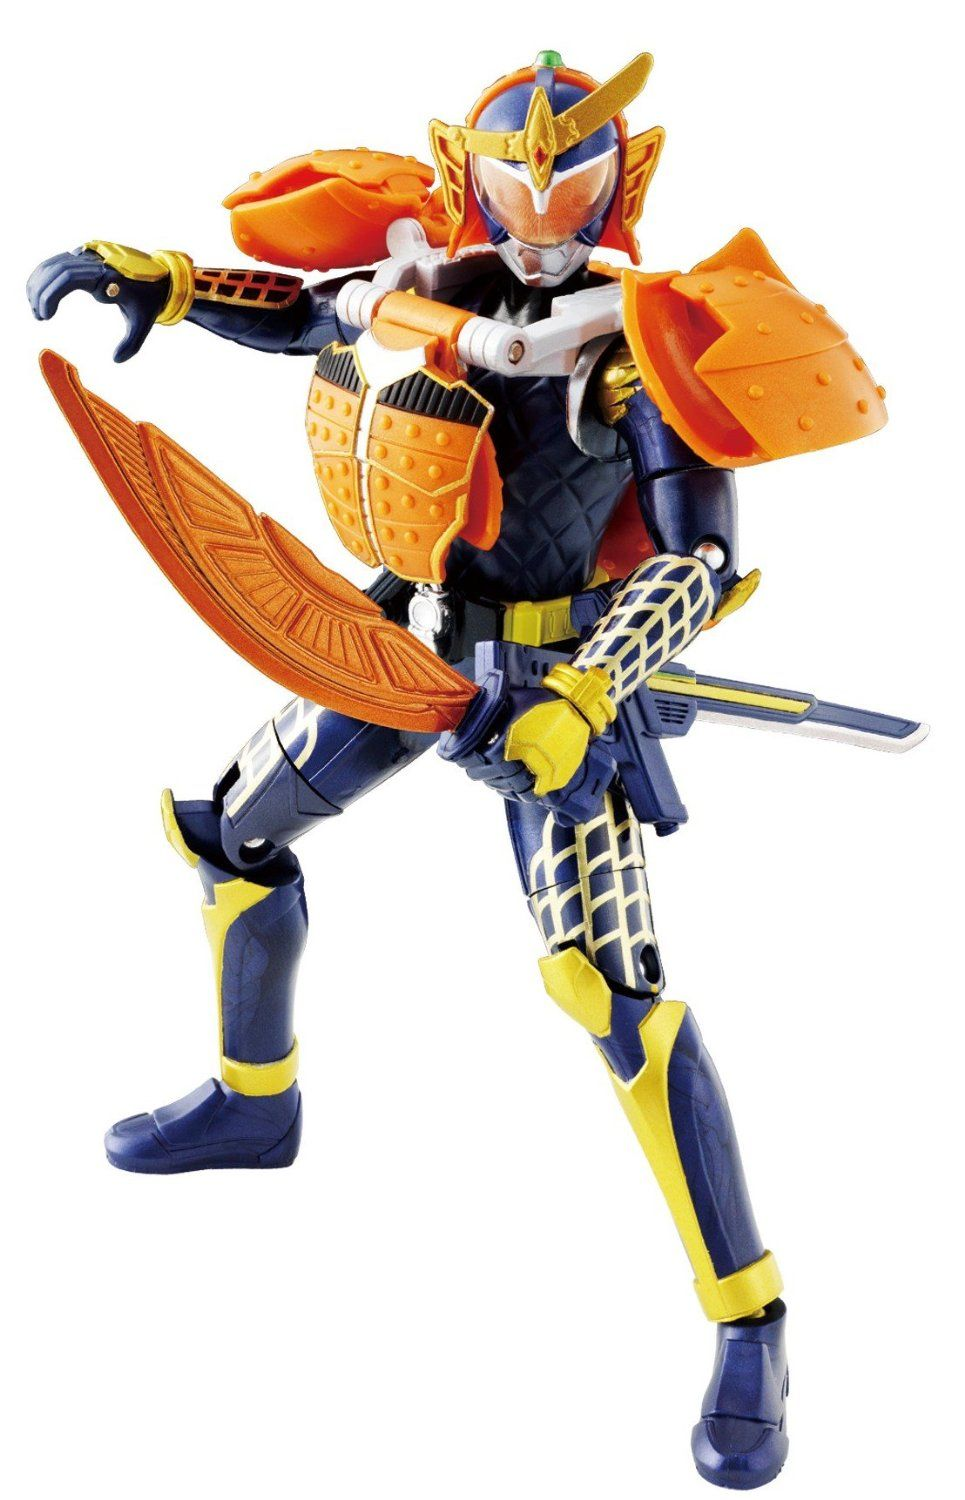 Kamen Rider Gaim Ac01 Orange Arms Kamen Rider Vs Super Sentai